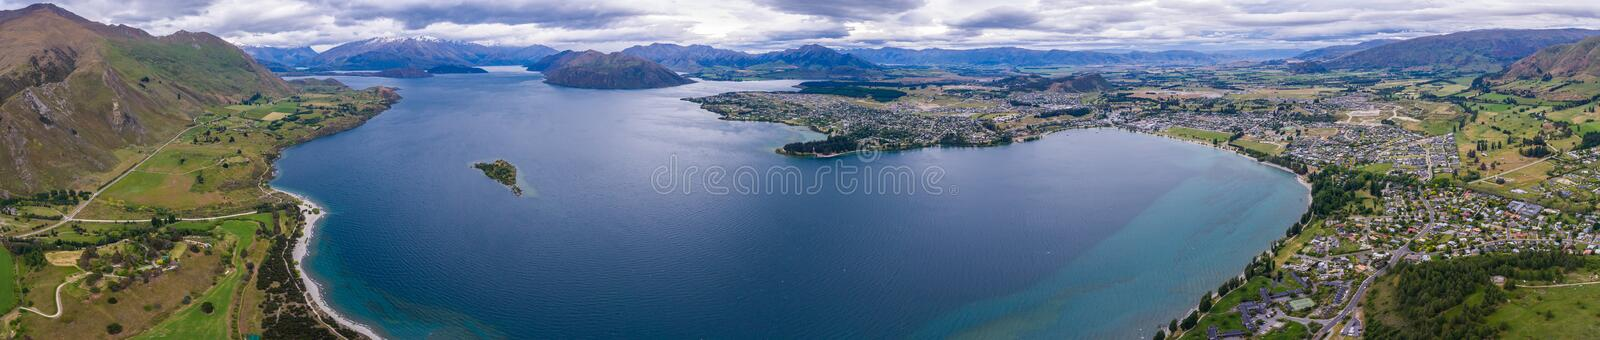 Lake Wanaka, New Zealand Panoramic Landscape. From aerial view captured by drone flying above Wanaka City. Wanaka is a popular resort of New Zealand, and is stock images